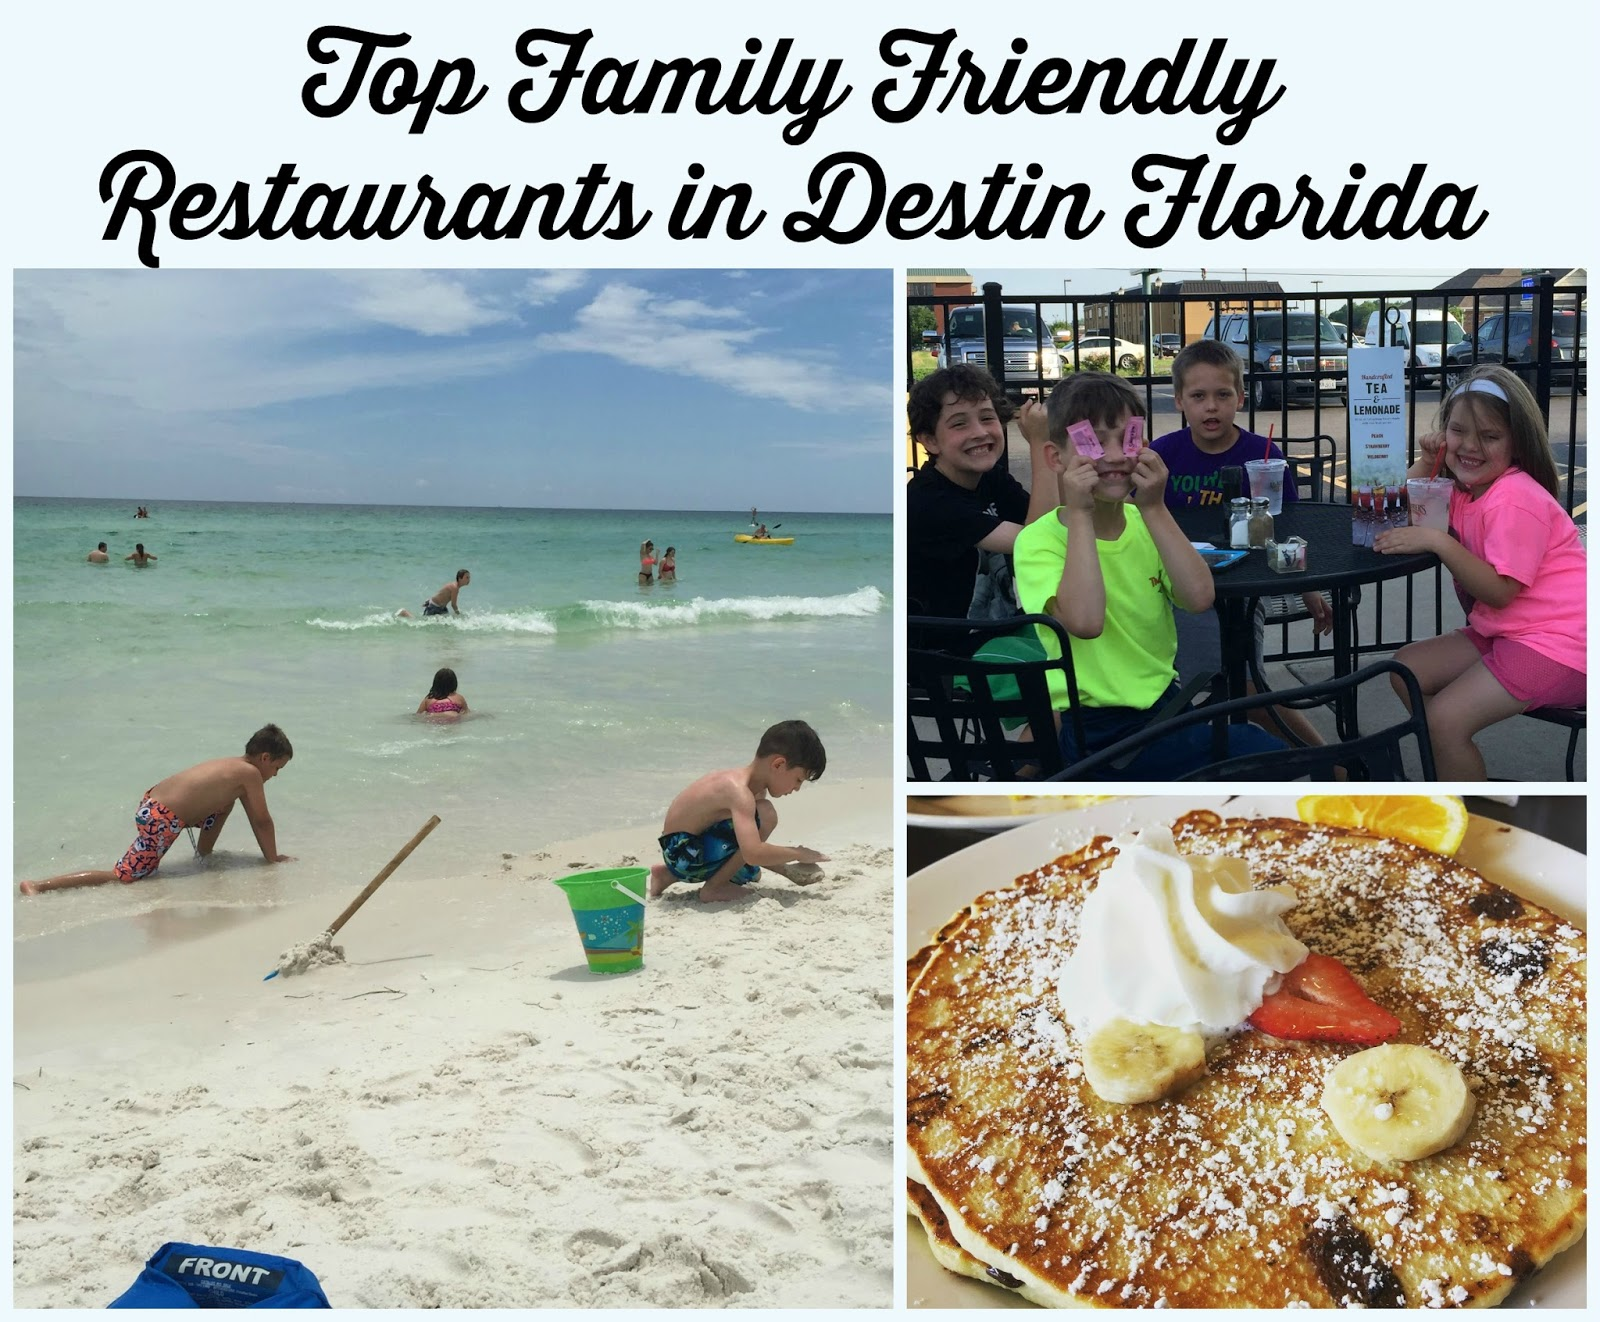 Top Restaurants To Take The Family In Destin Florida